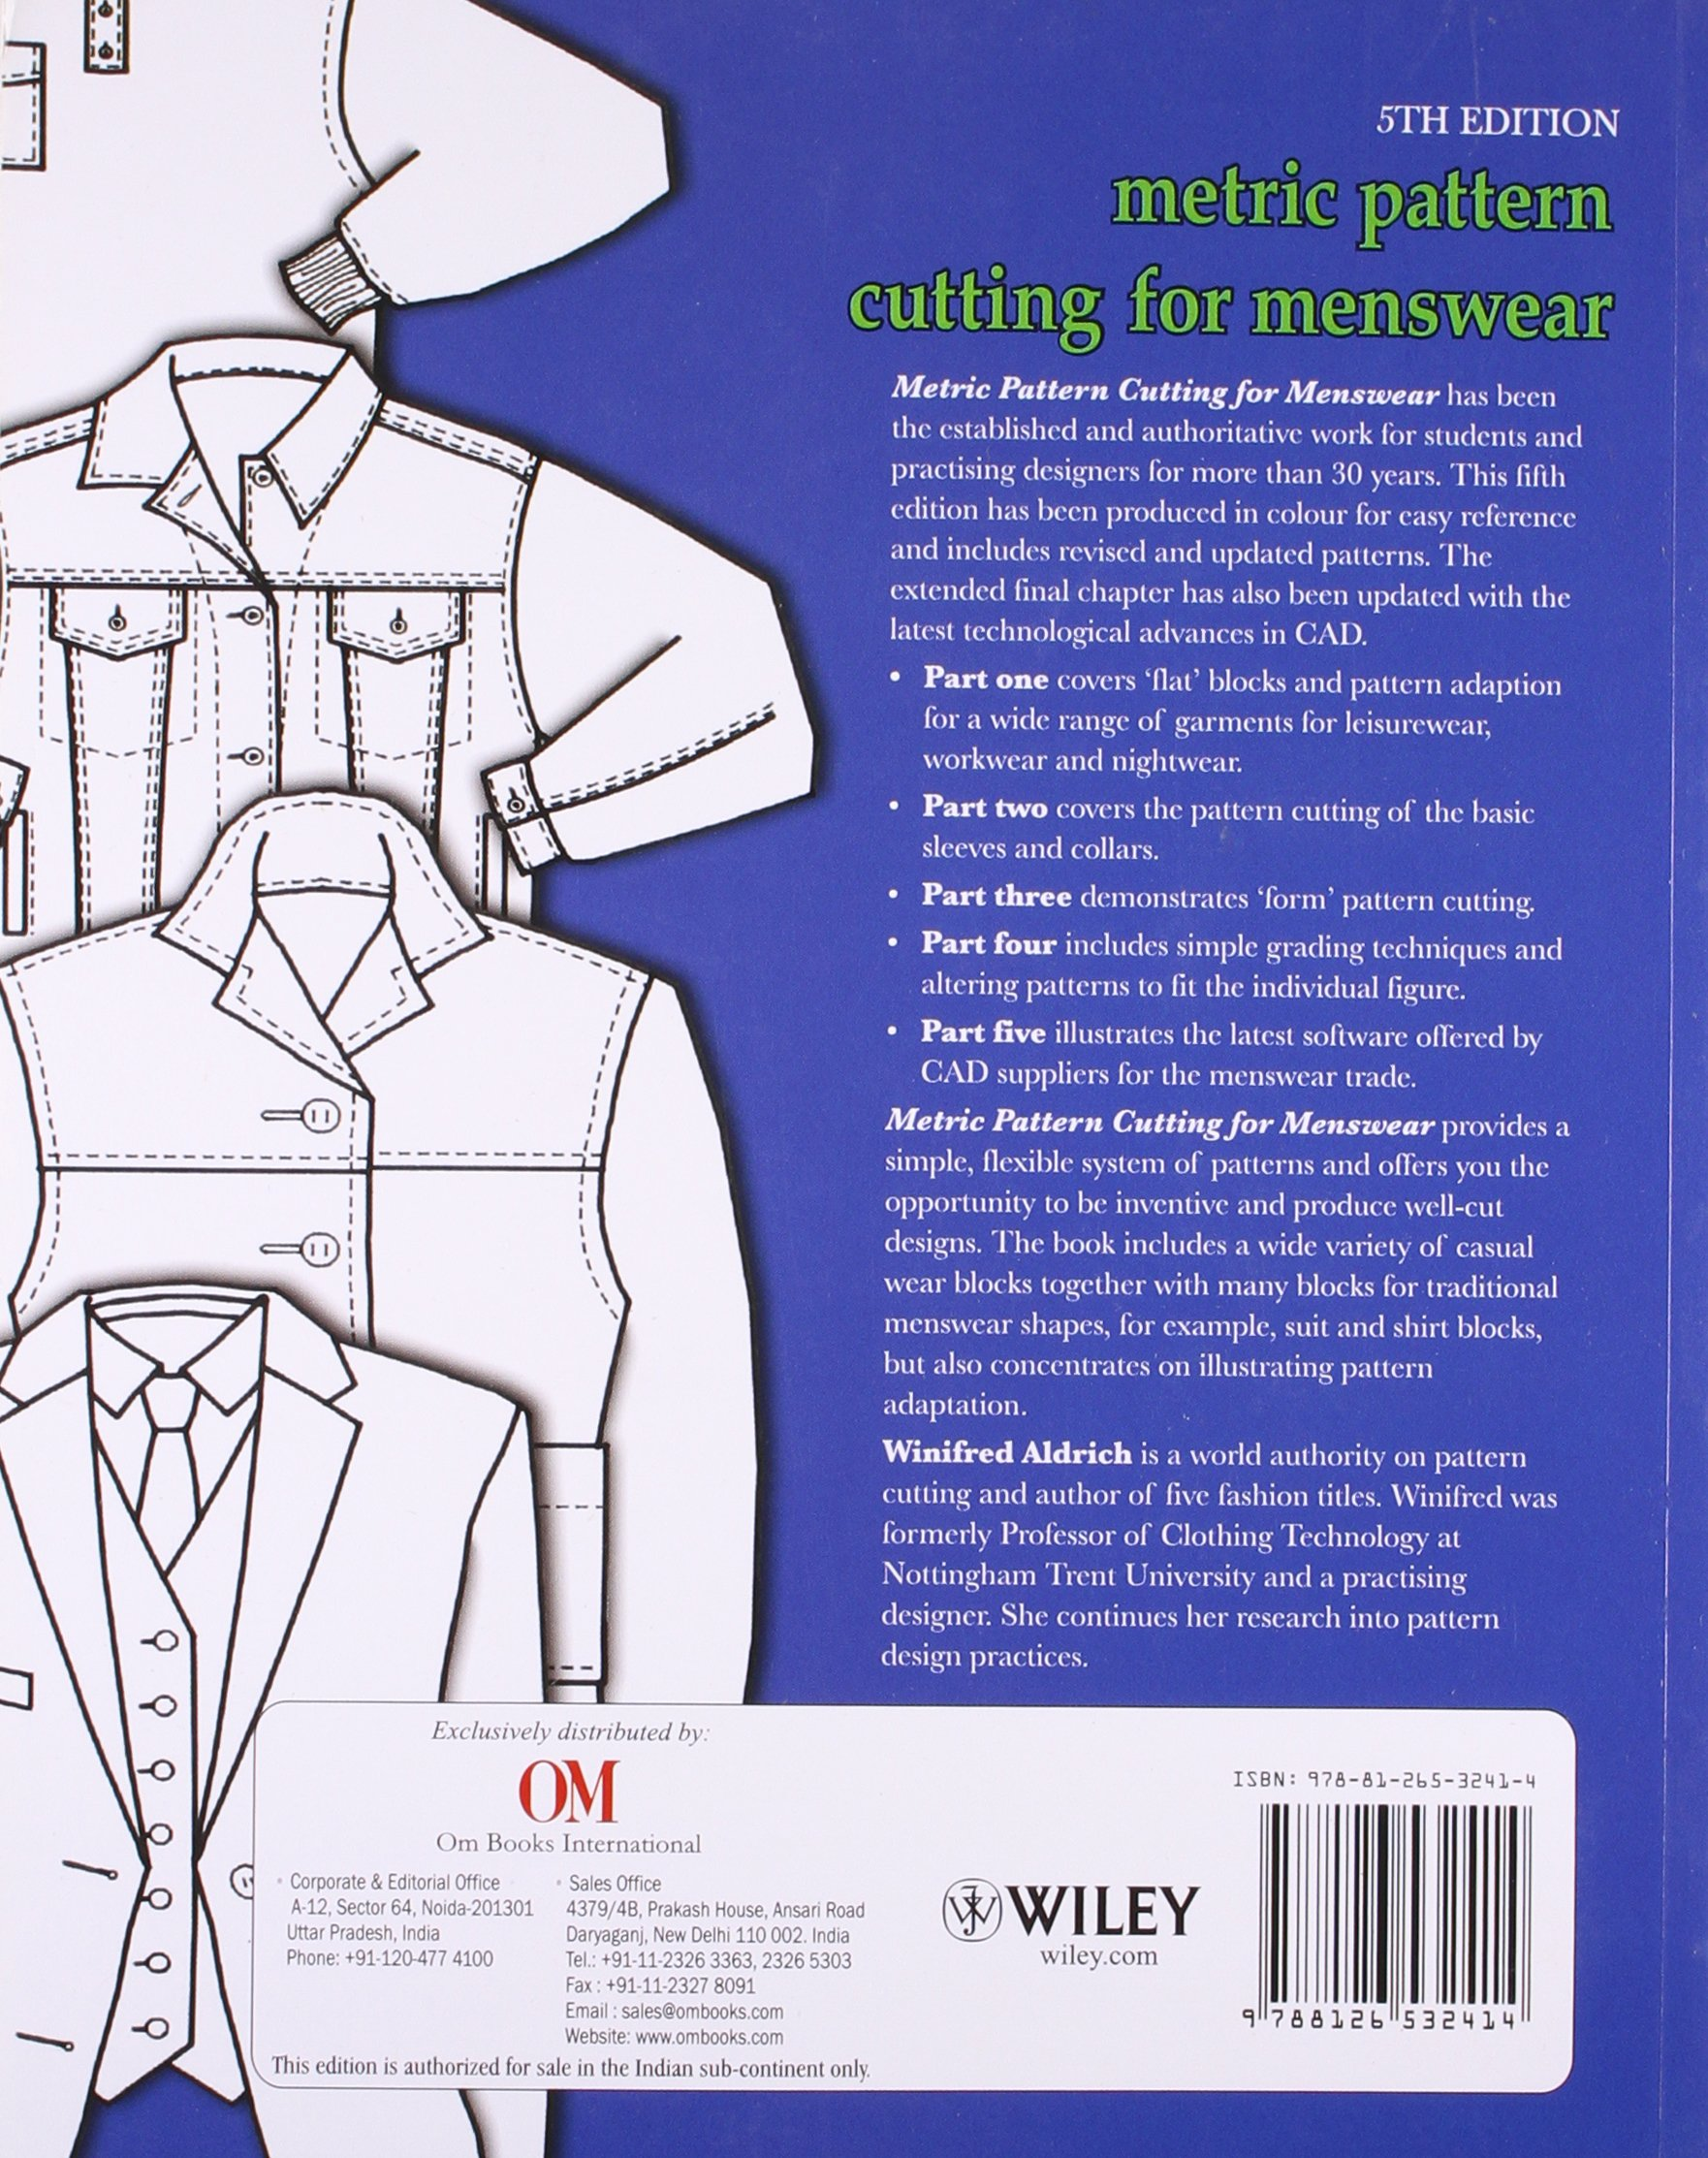 Buy metric pattern cutting for menswear book online at low prices in buy metric pattern cutting for menswear book online at low prices in india metric pattern cutting for menswear reviews ratings amazon fandeluxe Image collections